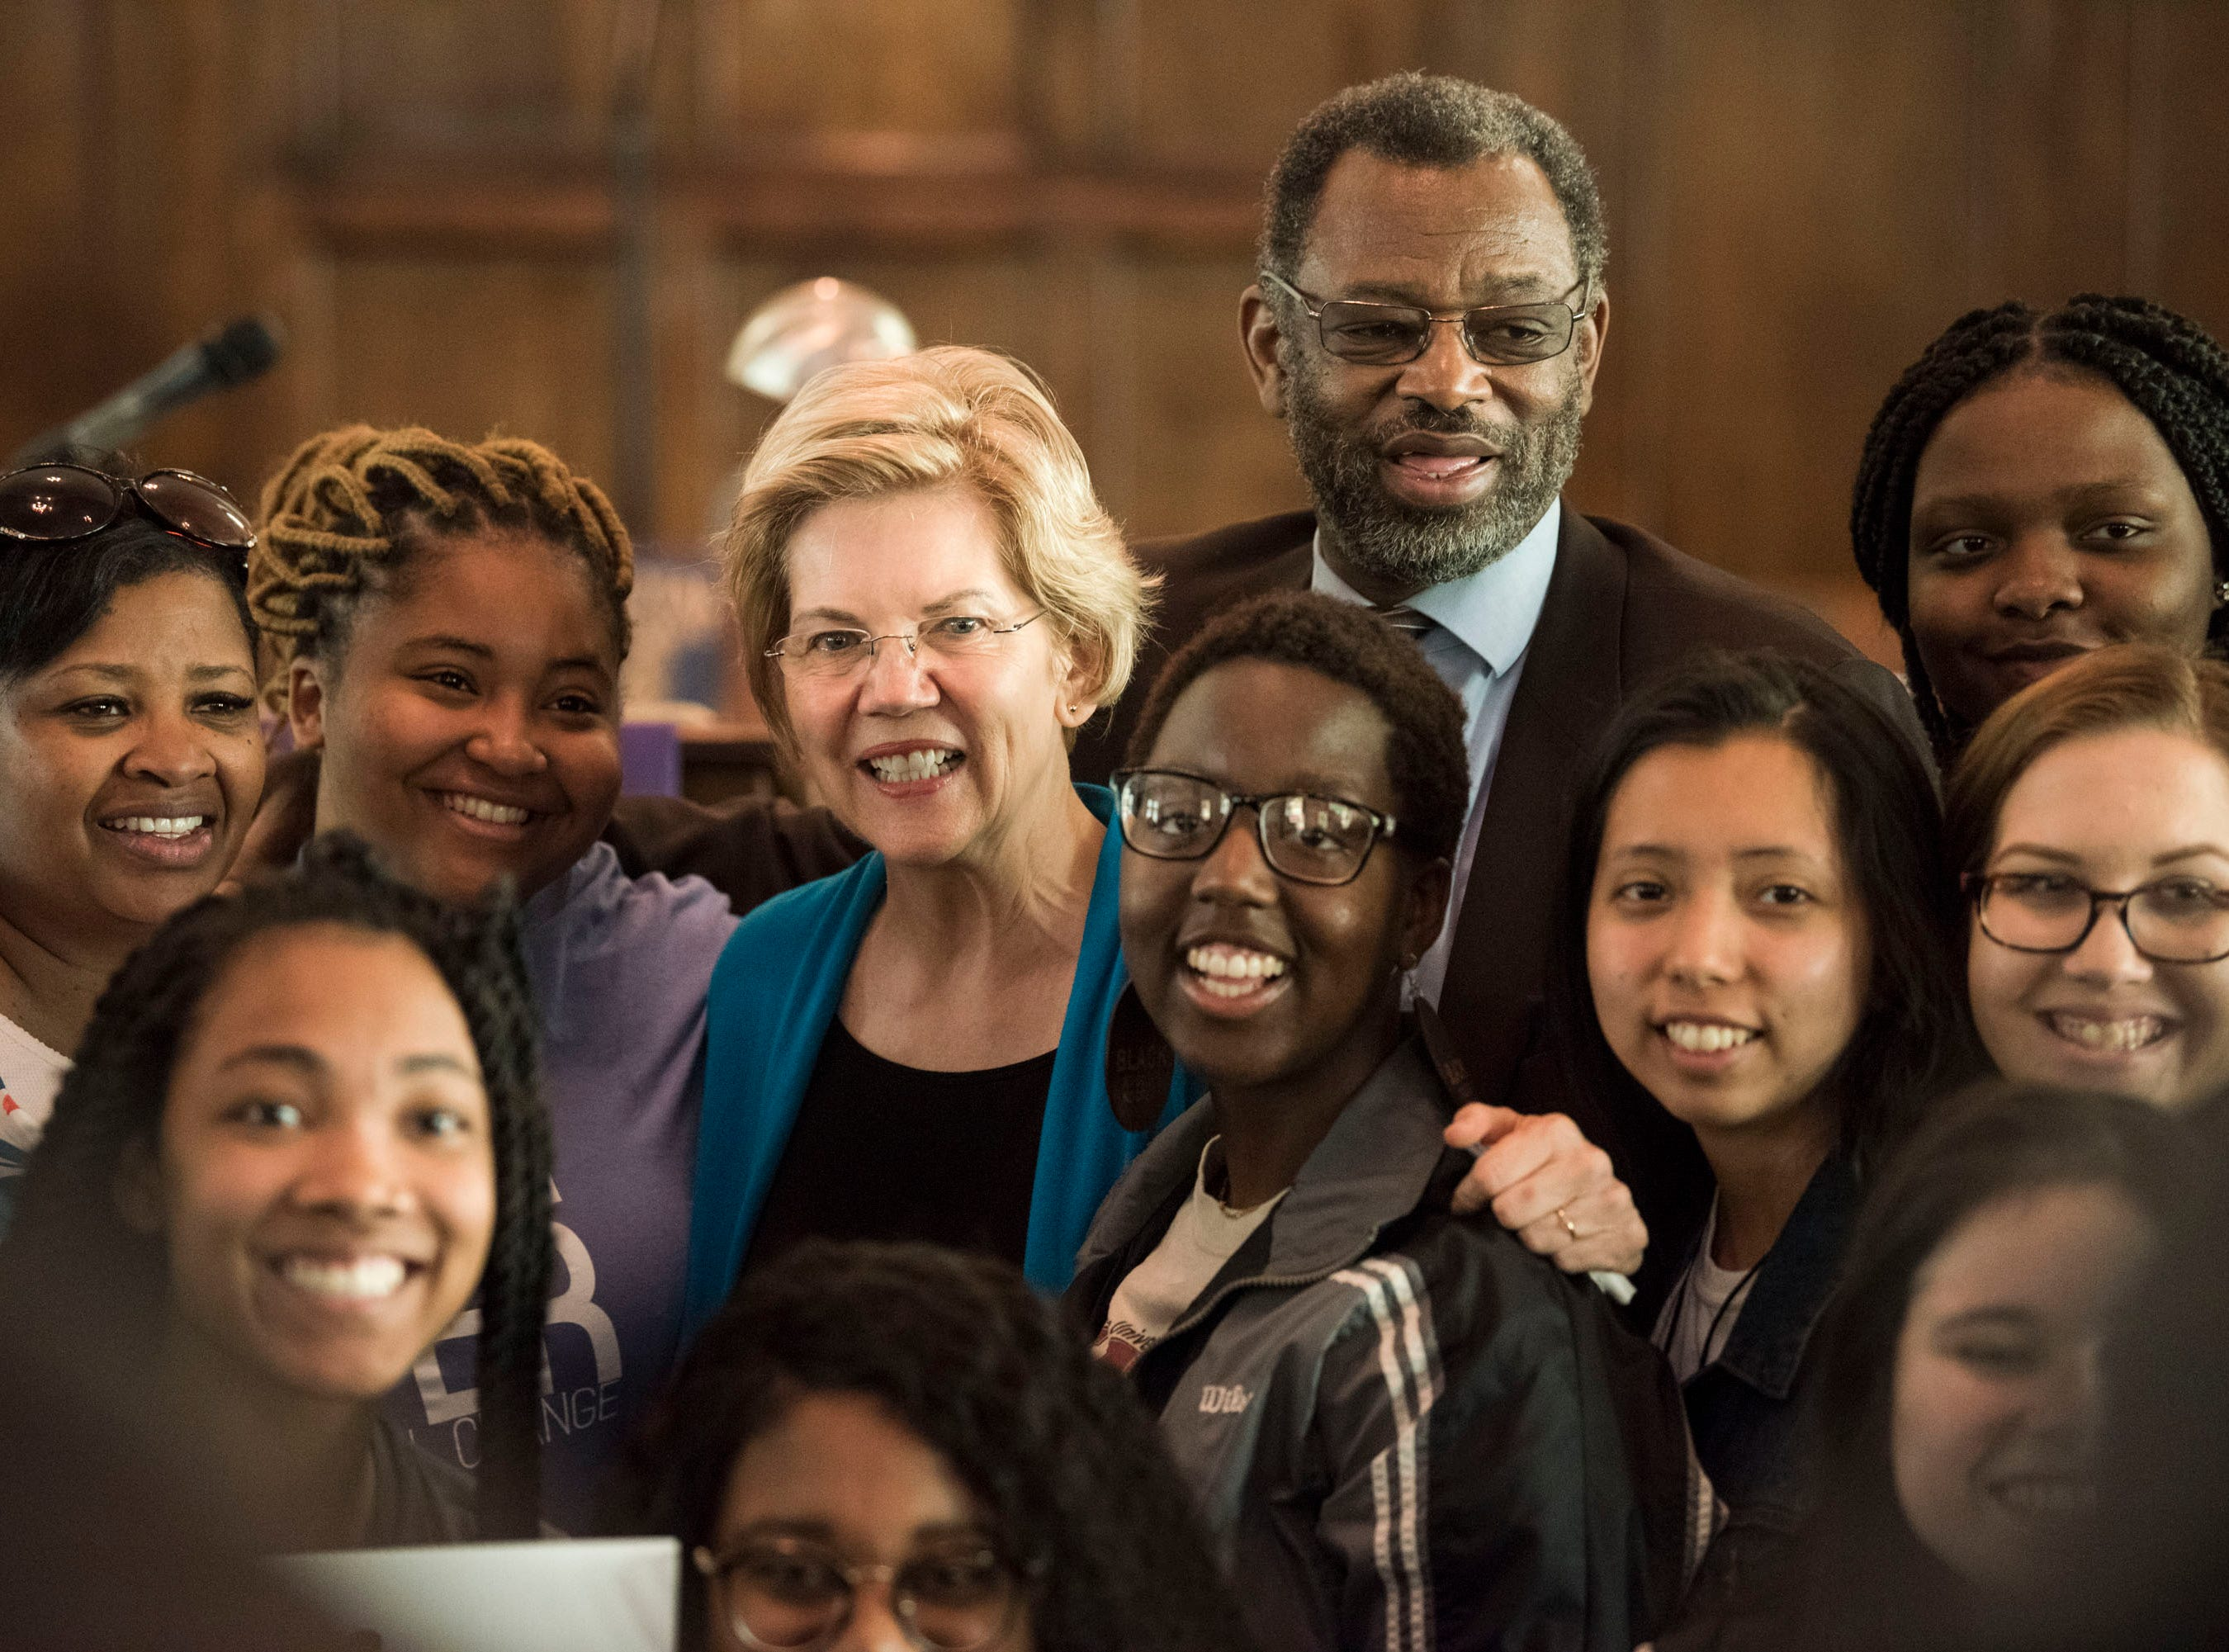 Sen. Elizabeth Warren poses for a photo with students from Florida State University at Brown Chapel AME Church in Selma, Ala., on Tuesday, March 19, 2019.